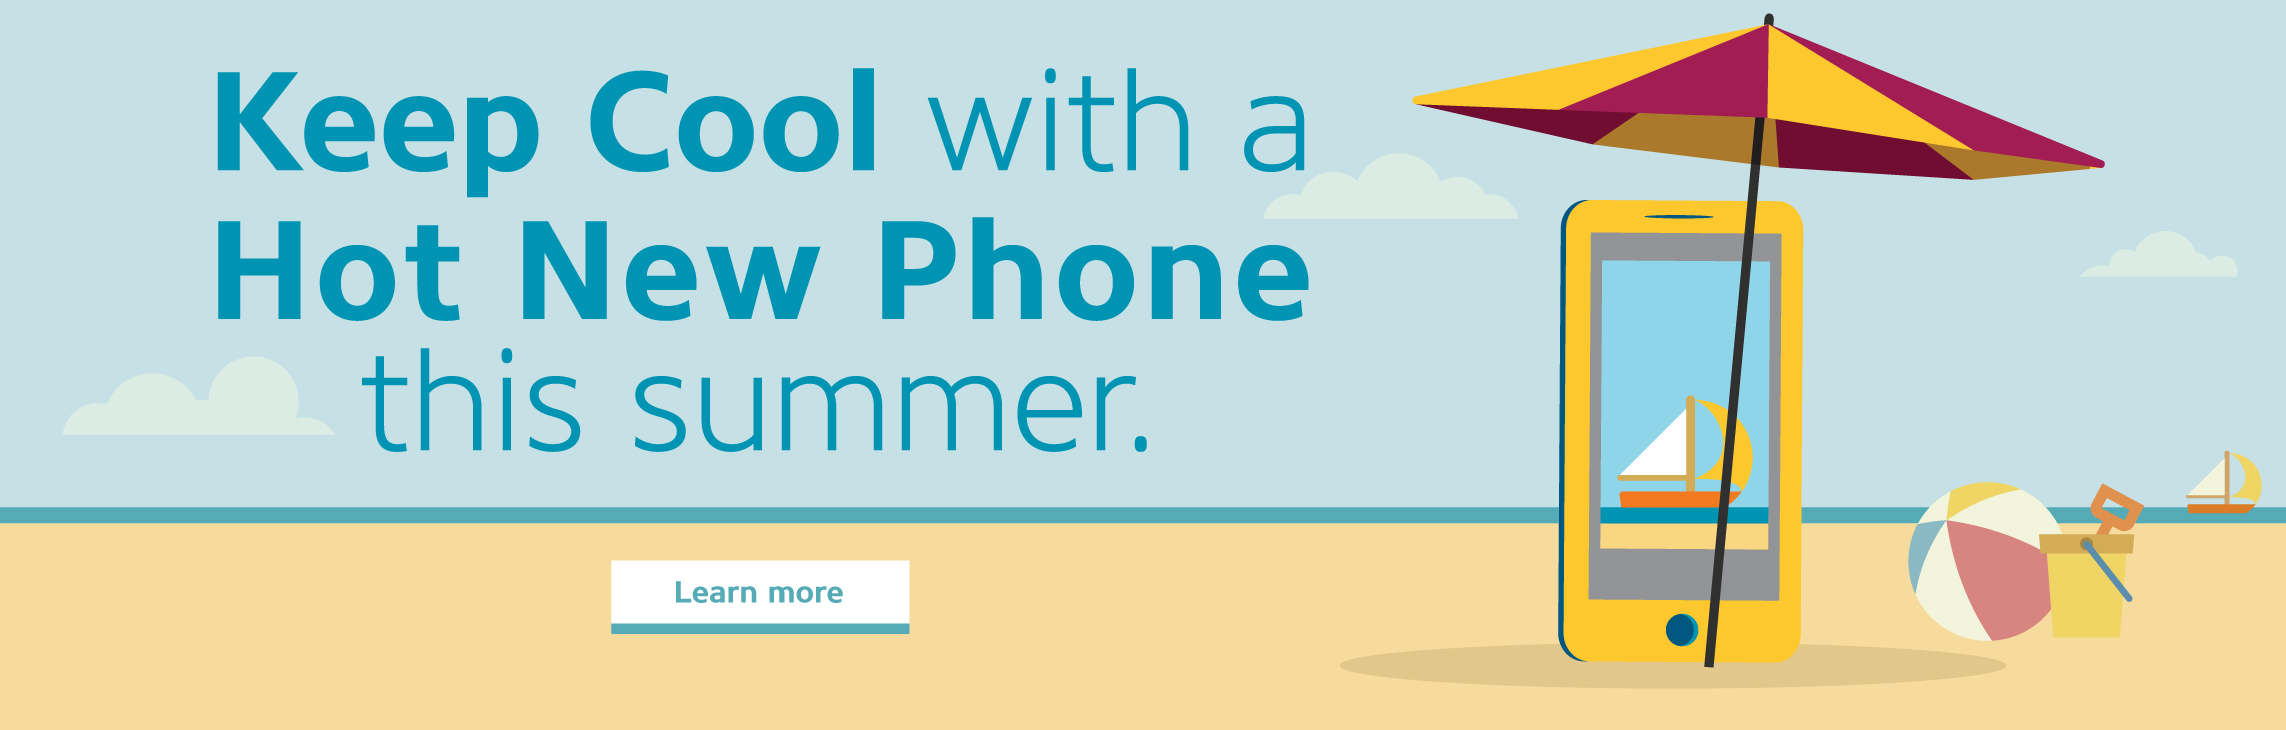 Keep cool with a Hot New Phone this summer.